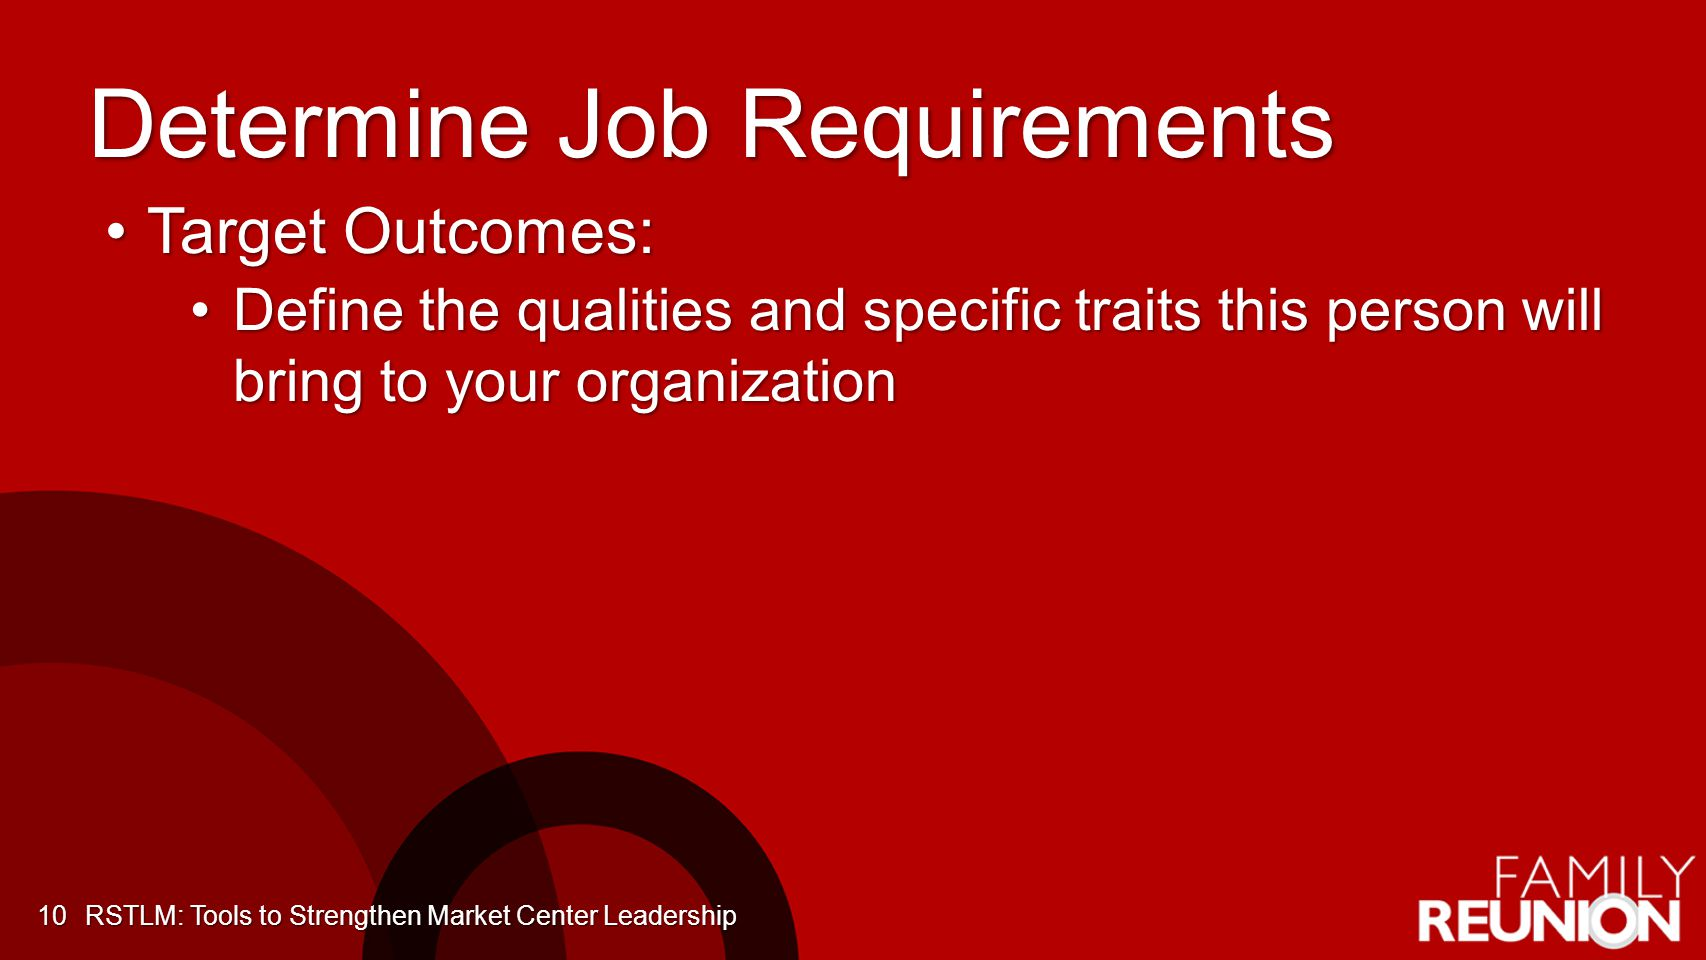 Determine Job Requirements Target Outcomes:Target Outcomes: Define the qualities and specific traits this person will bring to your organizationDefine